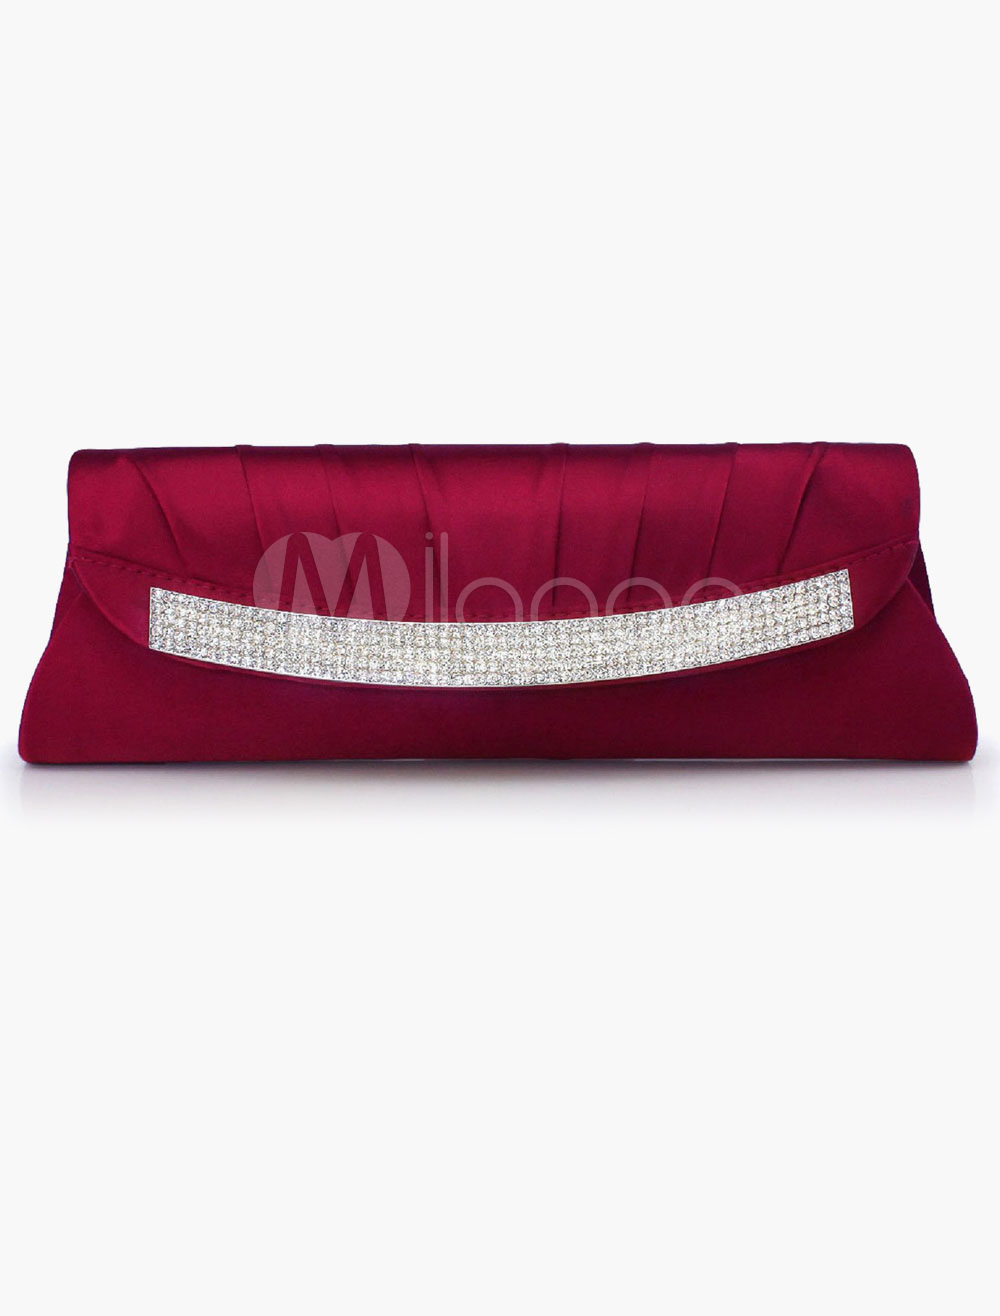 Buy Women's Rhinestone Silk Evening Bag in 6 Colors Detachable Chain for $21.59 in Milanoo store